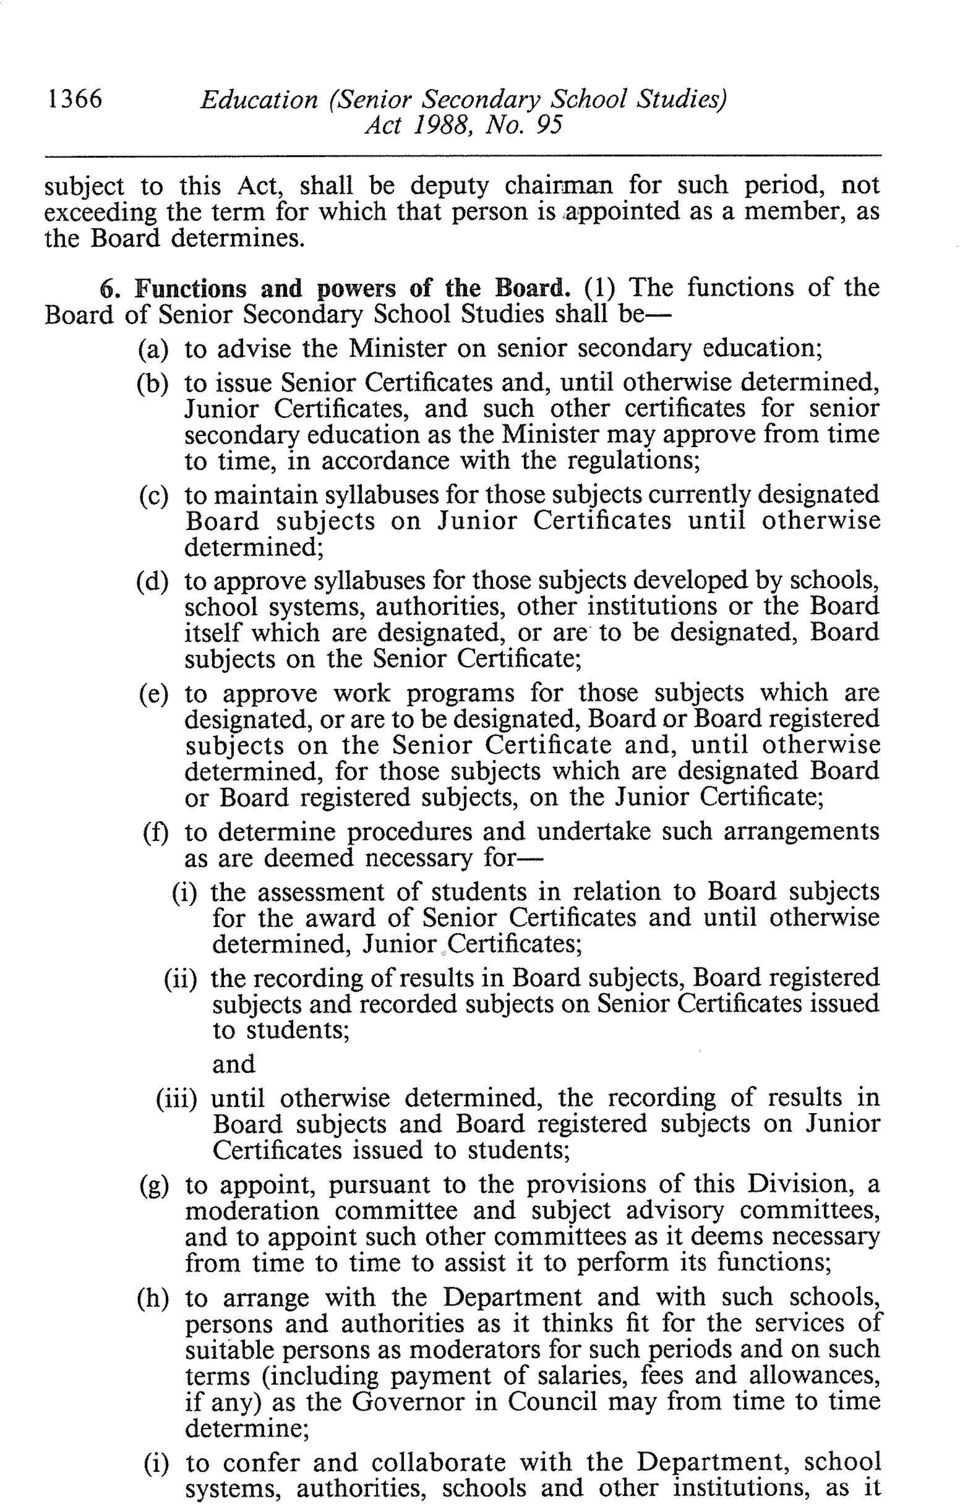 (1) The functions of the Board of Senior Secondary School Studies shall be- (a) to advise the Minister on senior secondary education; (b) to issue Senior Certificates and, until otherwise determined,